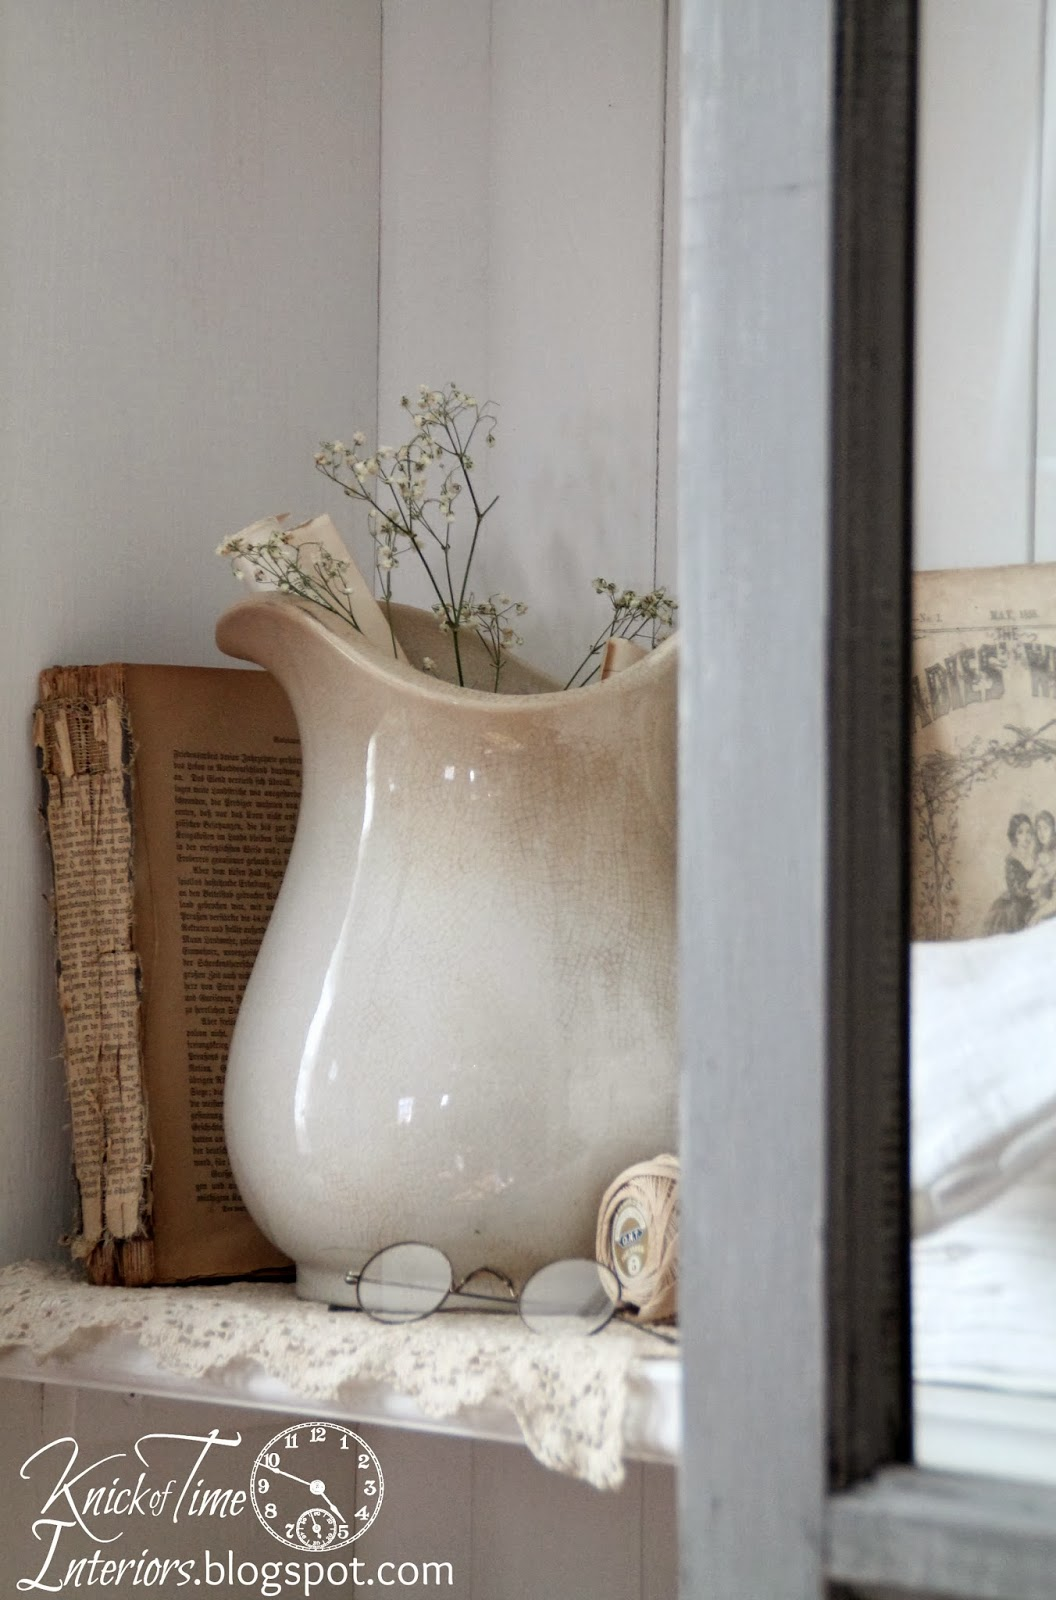 Ironstone Pitcher And Antique Eyeglasses With Repurposed Windows Into Diy Antique Cupboard Cabinet Via Knick Of